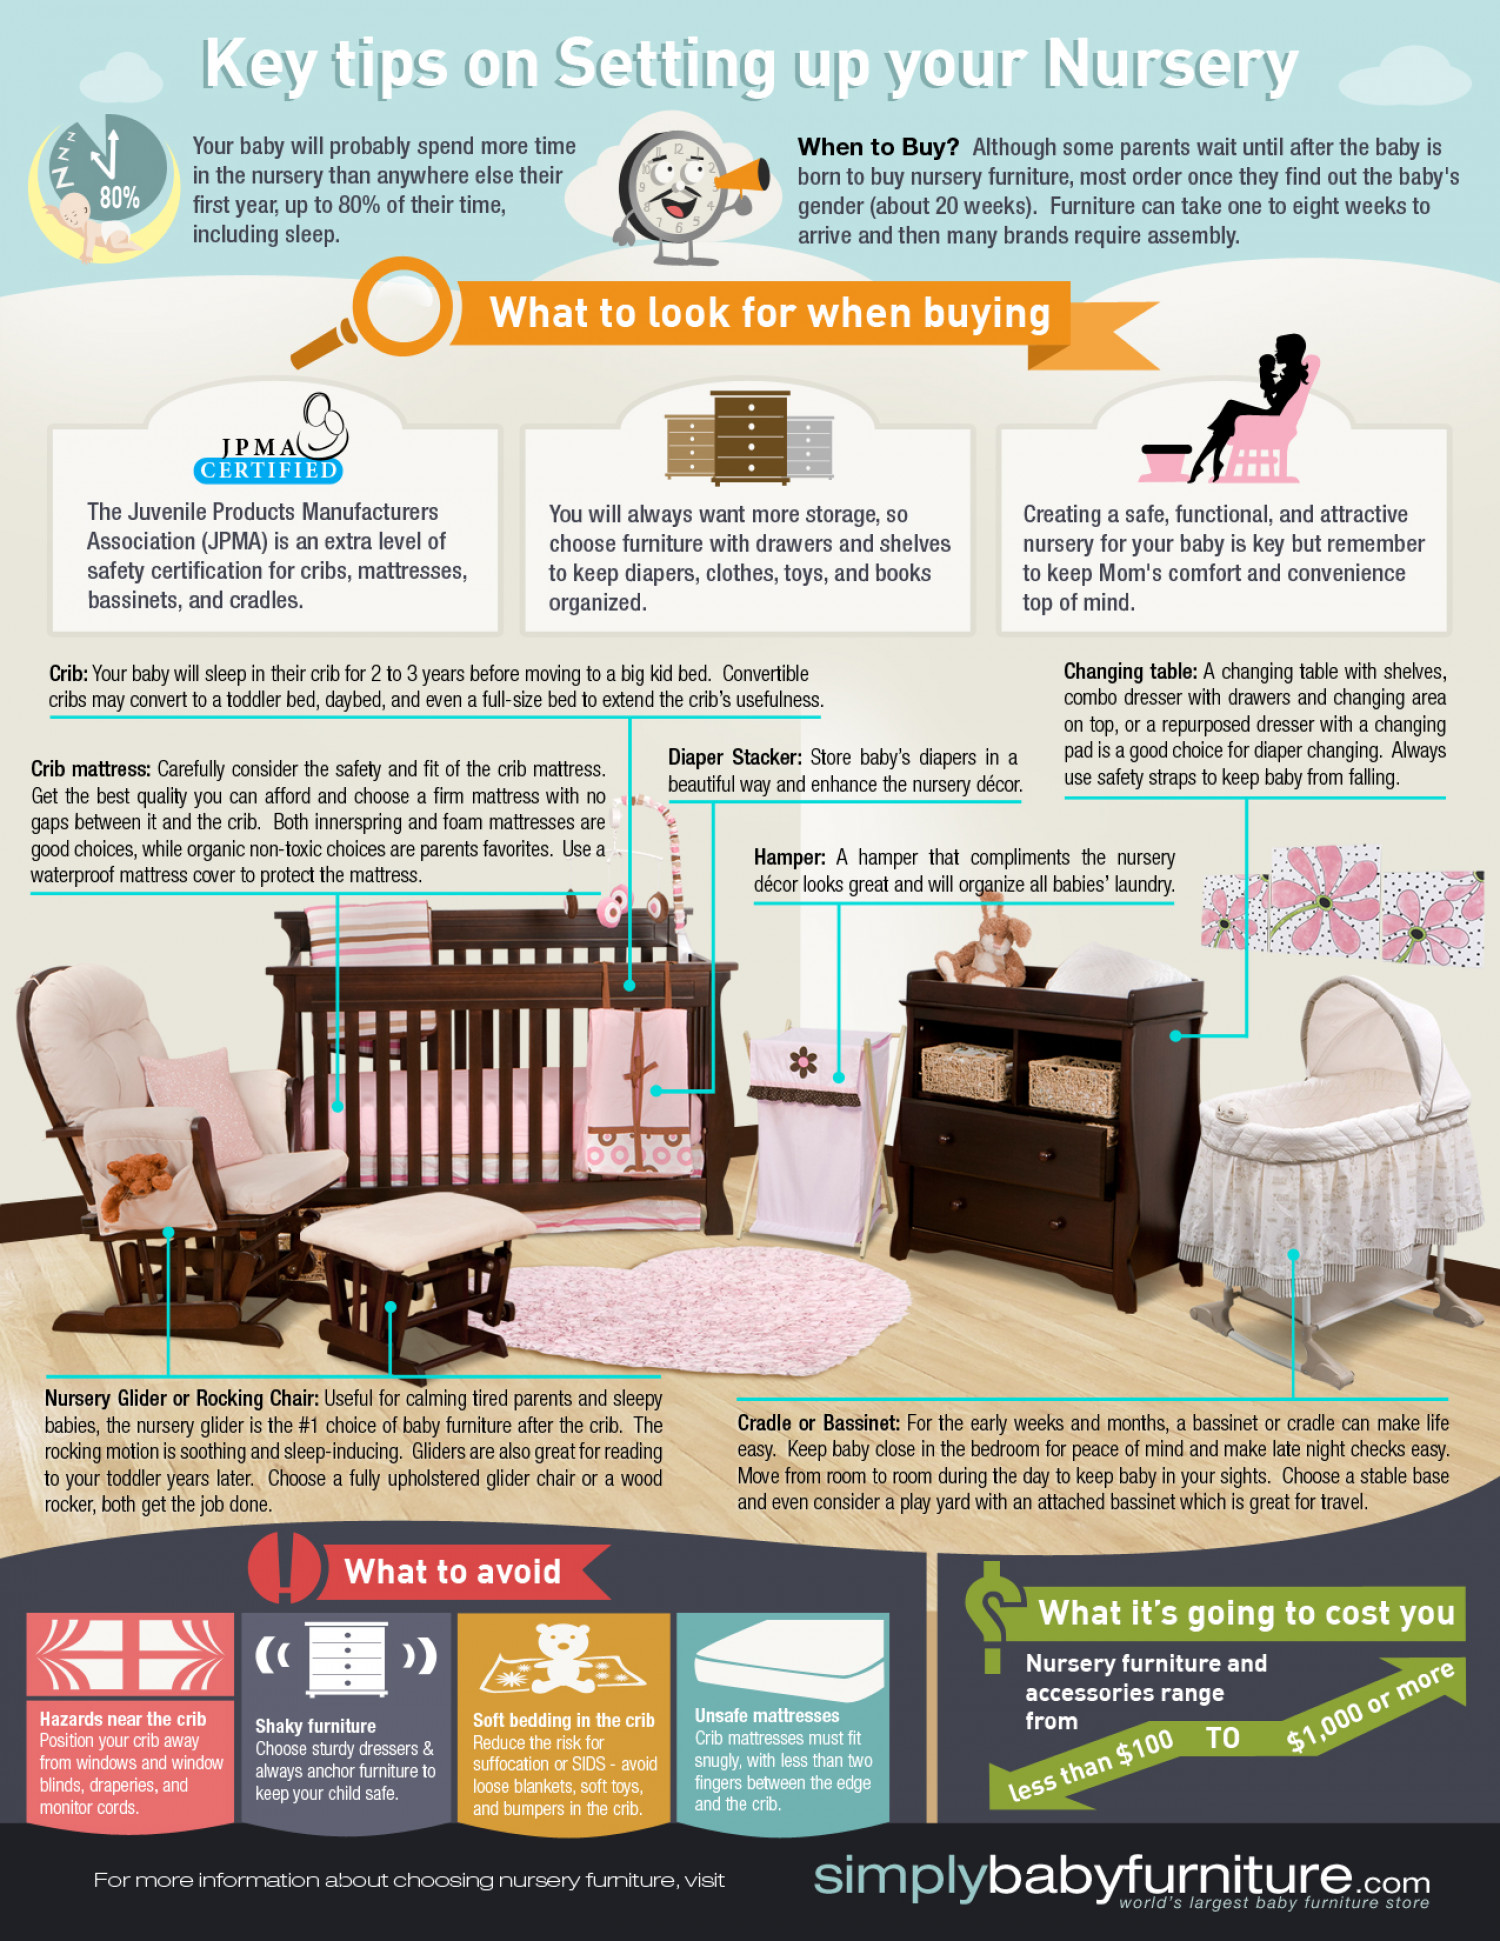 Top tips for making a baby s nursery special - Key Tips On Setting Up Your Nursery Infographic